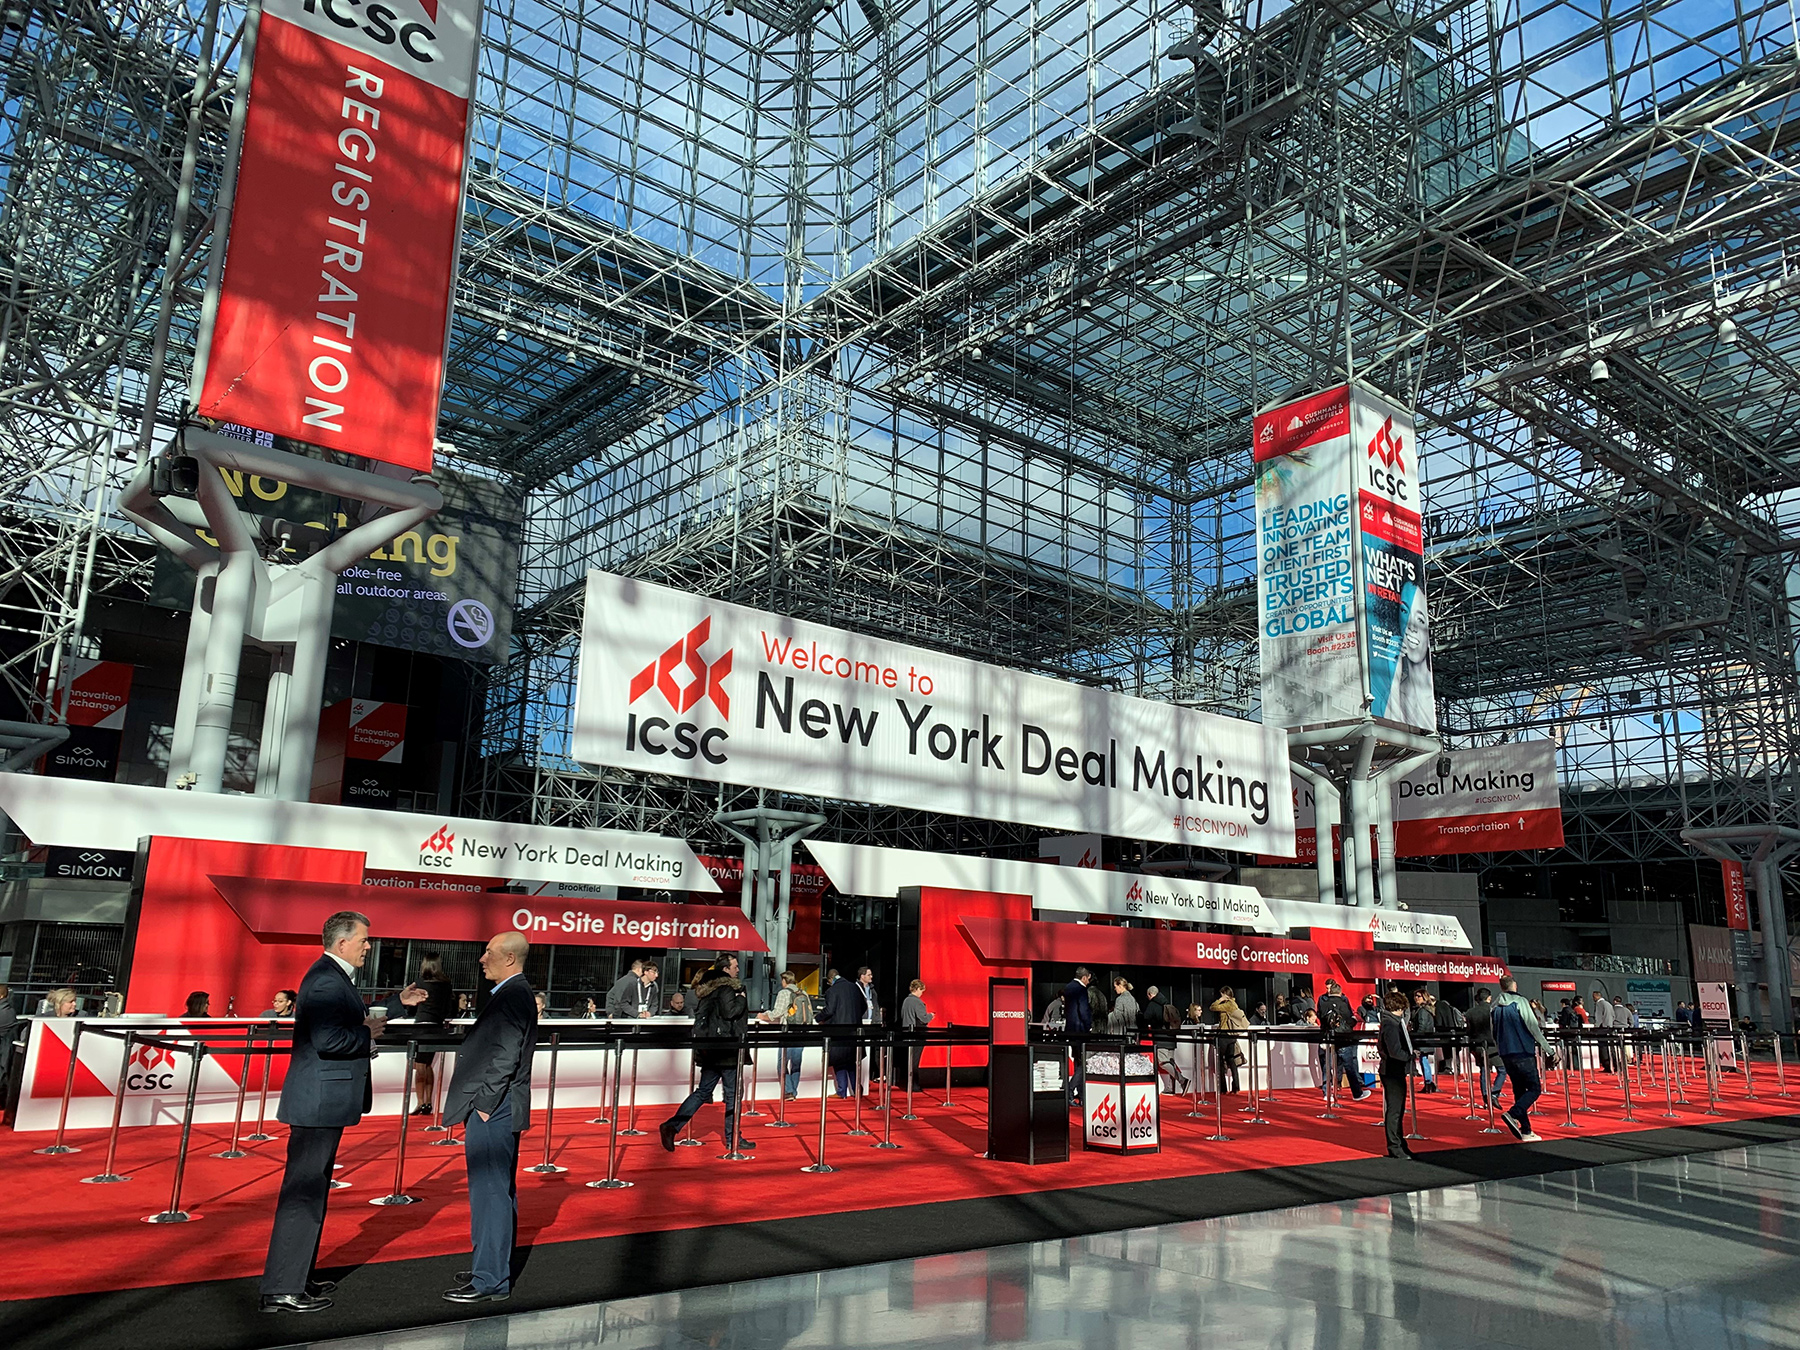 The International Council of Shopping Center's annual New York Deal Making conference kicks off Tuesday. (ICSC)